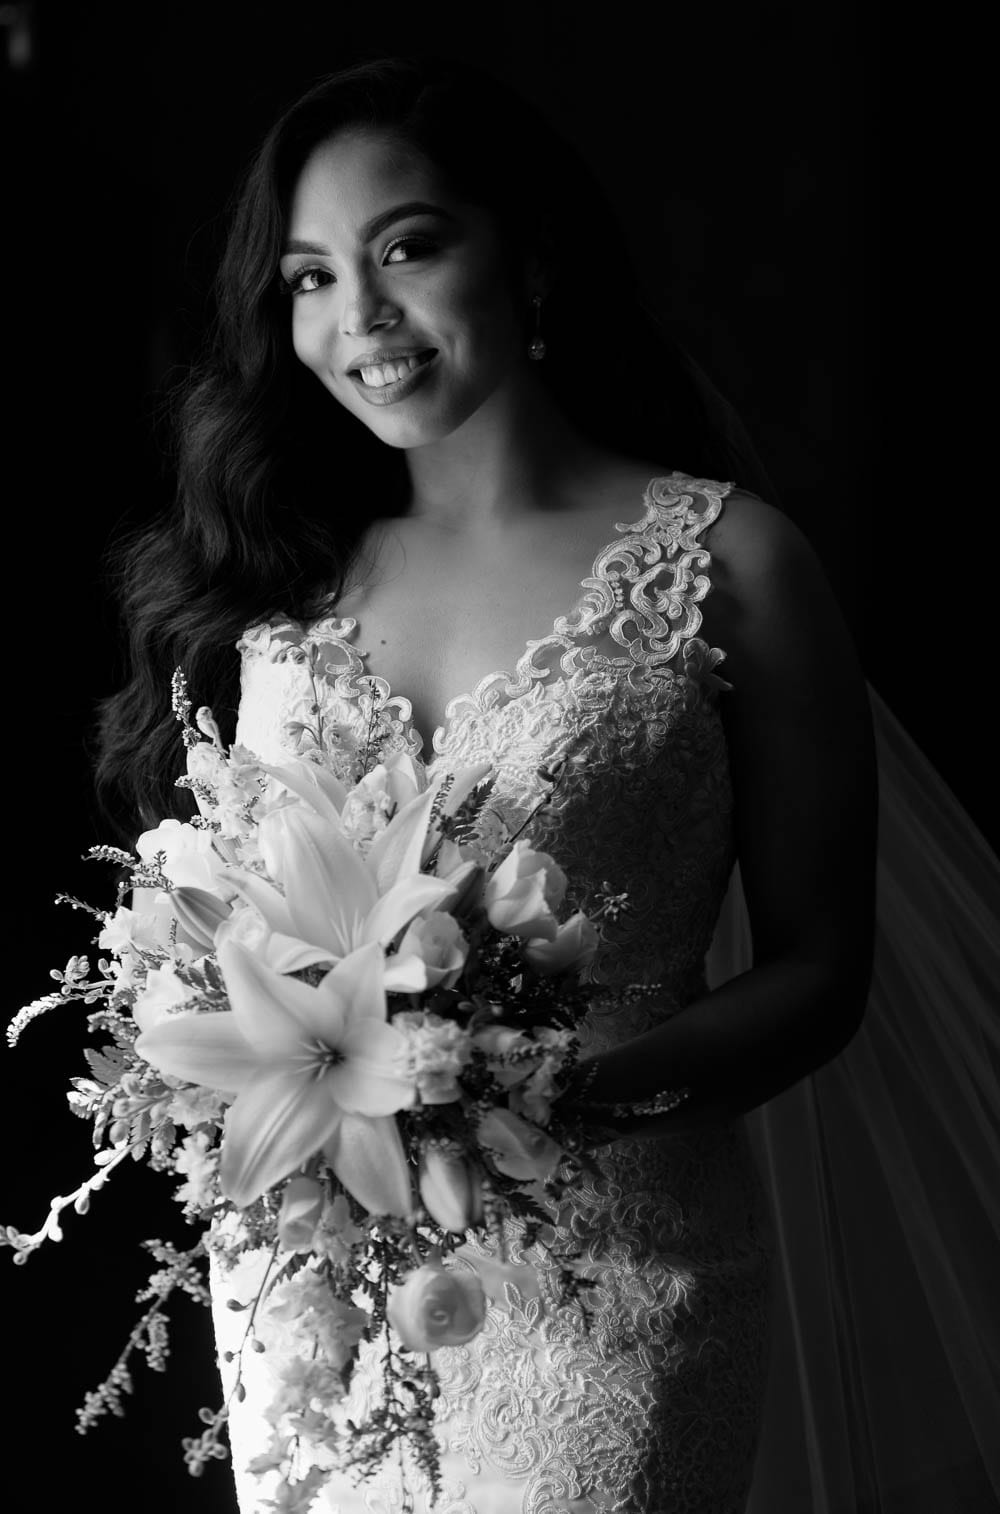 portrait of the bride to be in black and white